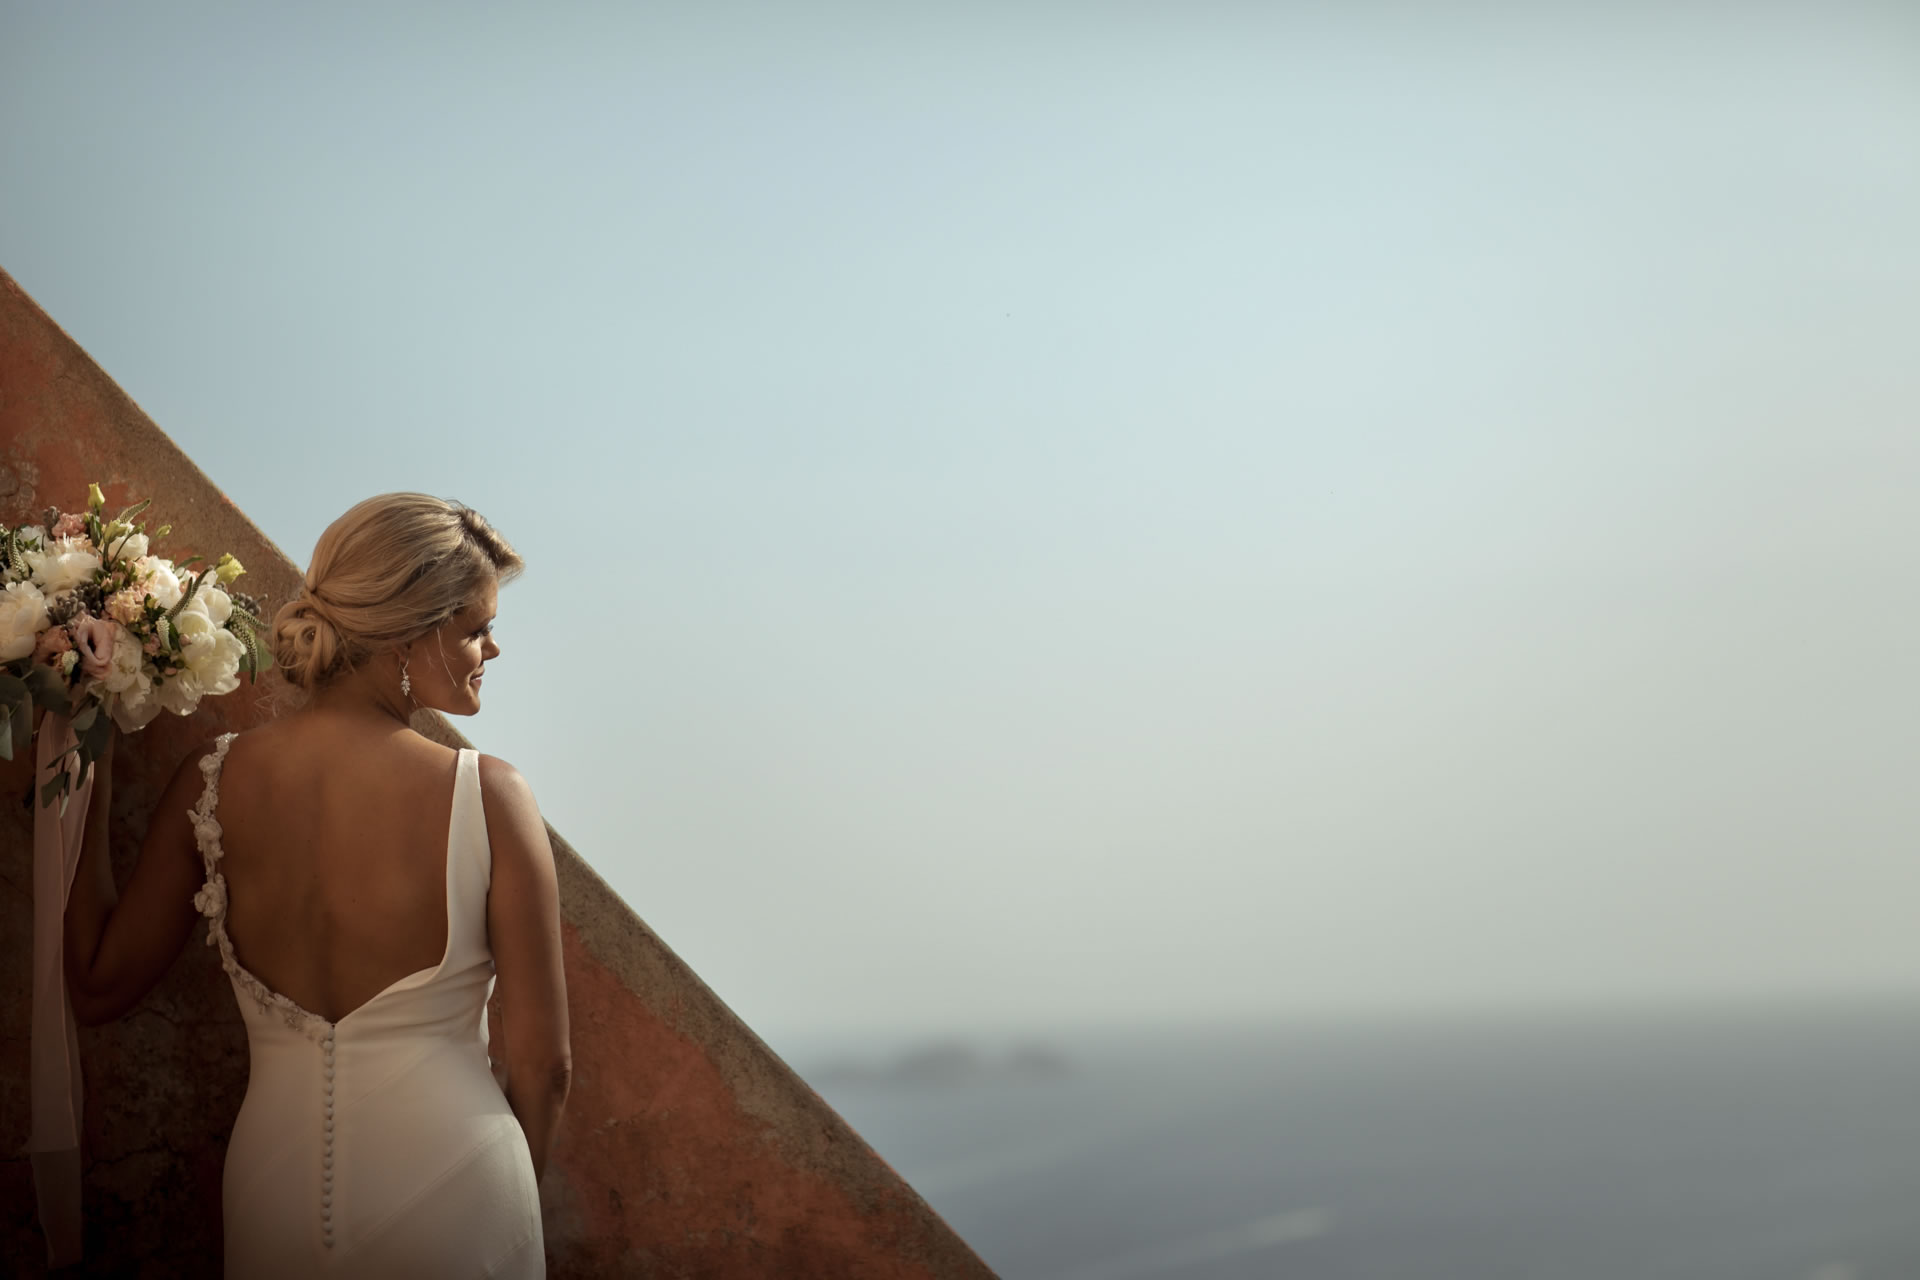 Sky - 33 :: Wedding in Positano. Sea and love :: Luxury wedding photography - 32 :: Sky - 33